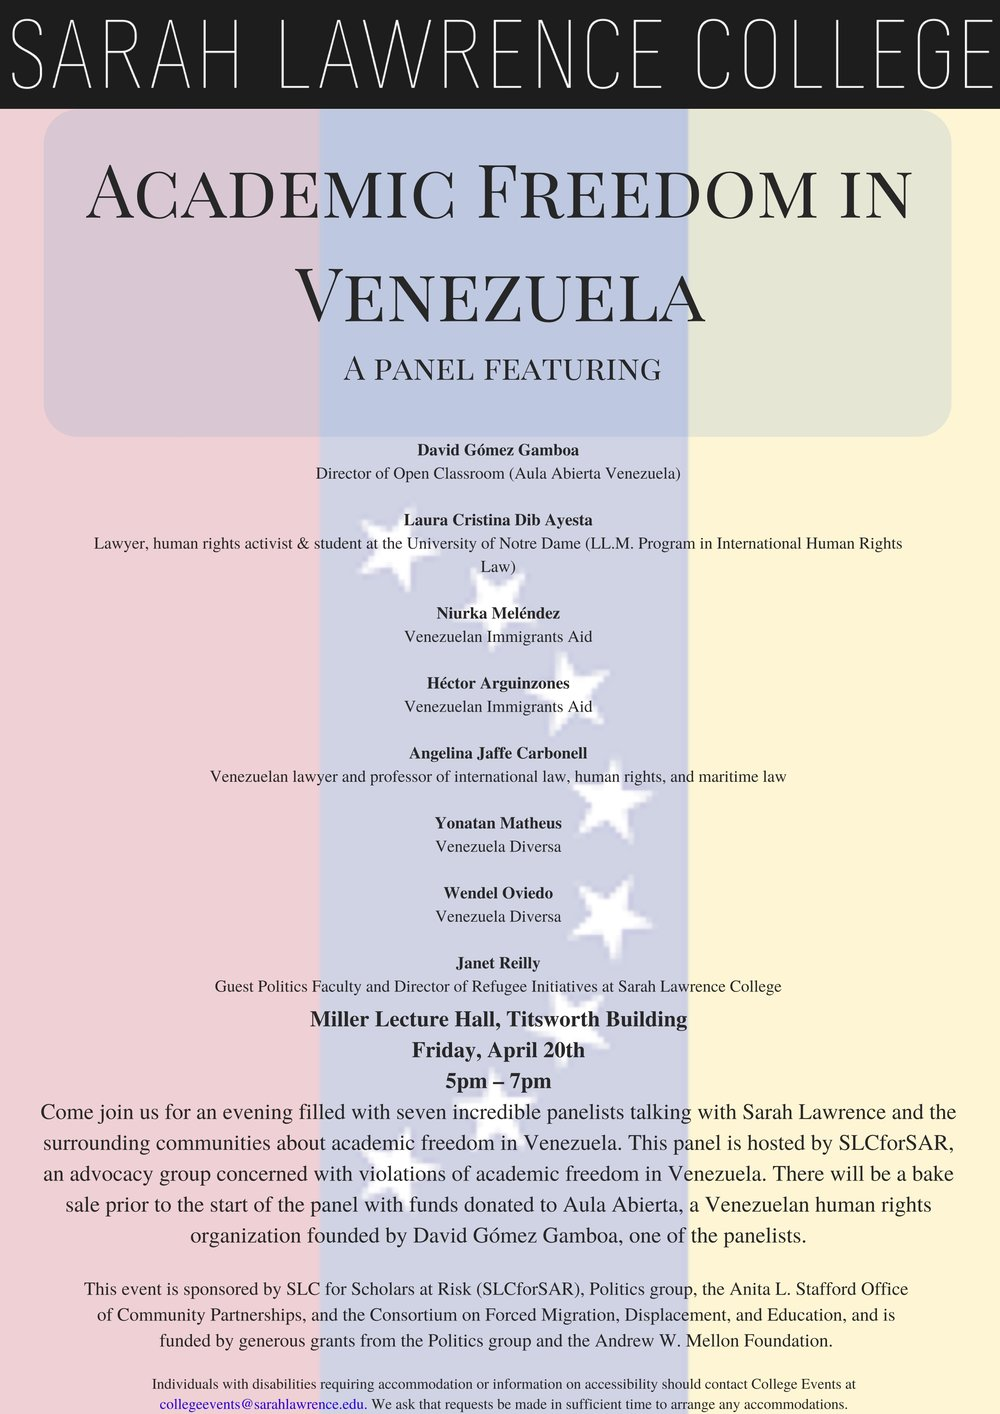 Be sure to check out the panel on Academic Freedom in Venezuela on Friday, 4/20 at 5 PM in Miller Lecture Hall. Credit: College Events